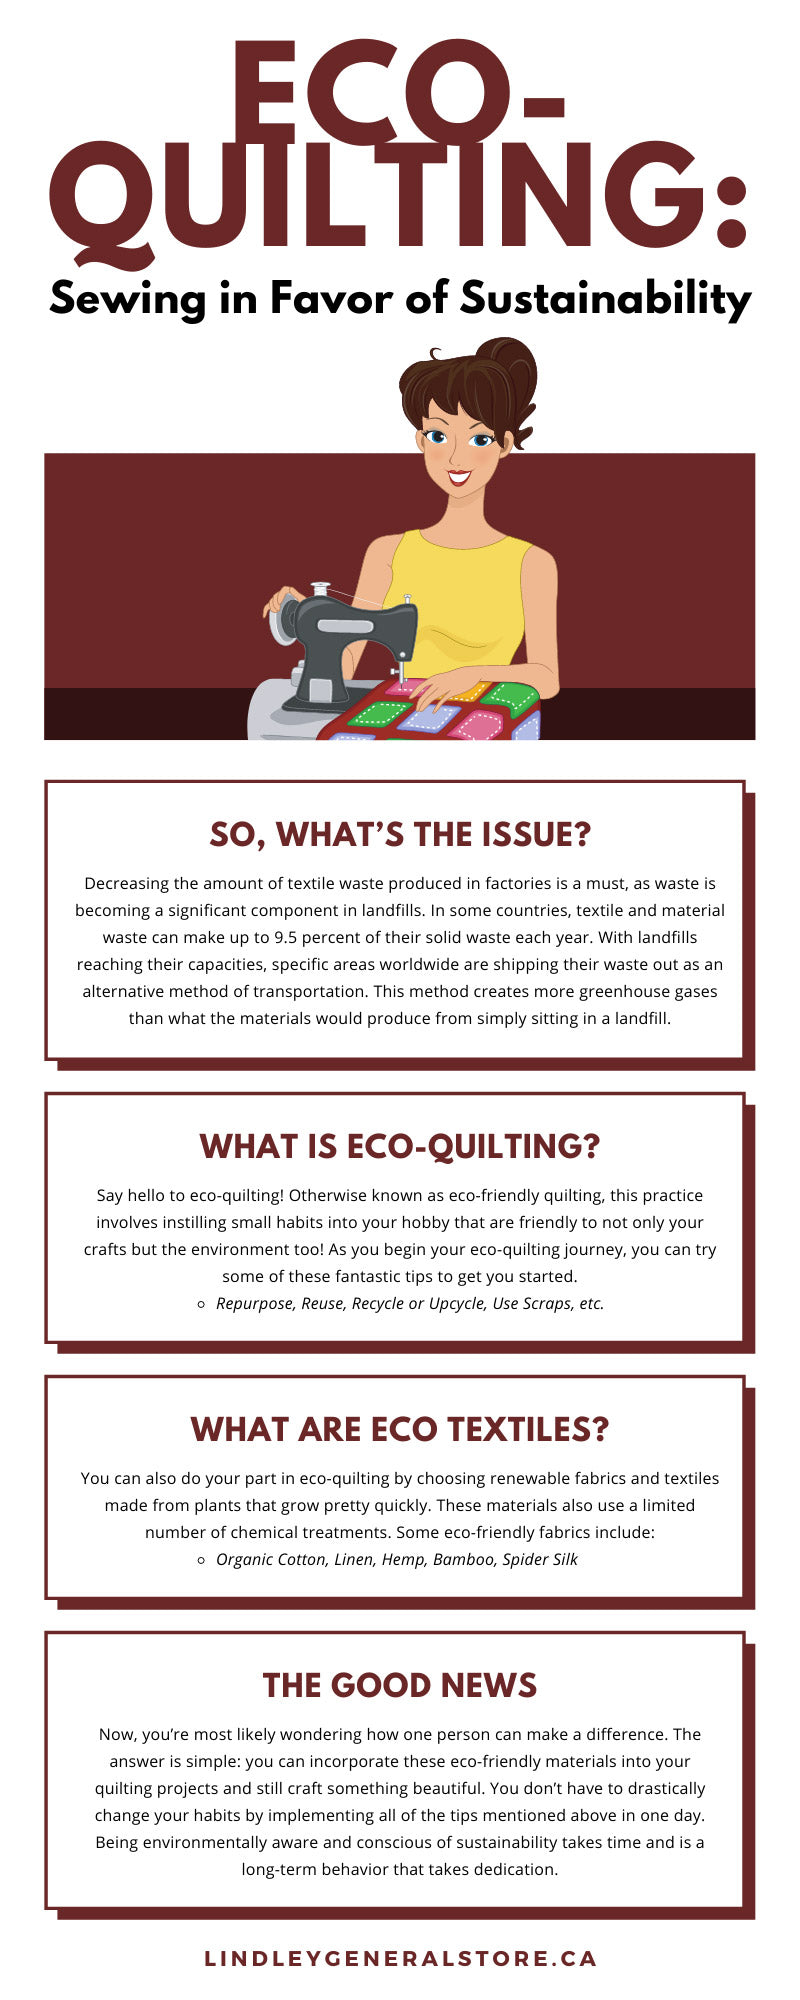 Eco-Quilting: Sewing in Favor of Sustainability